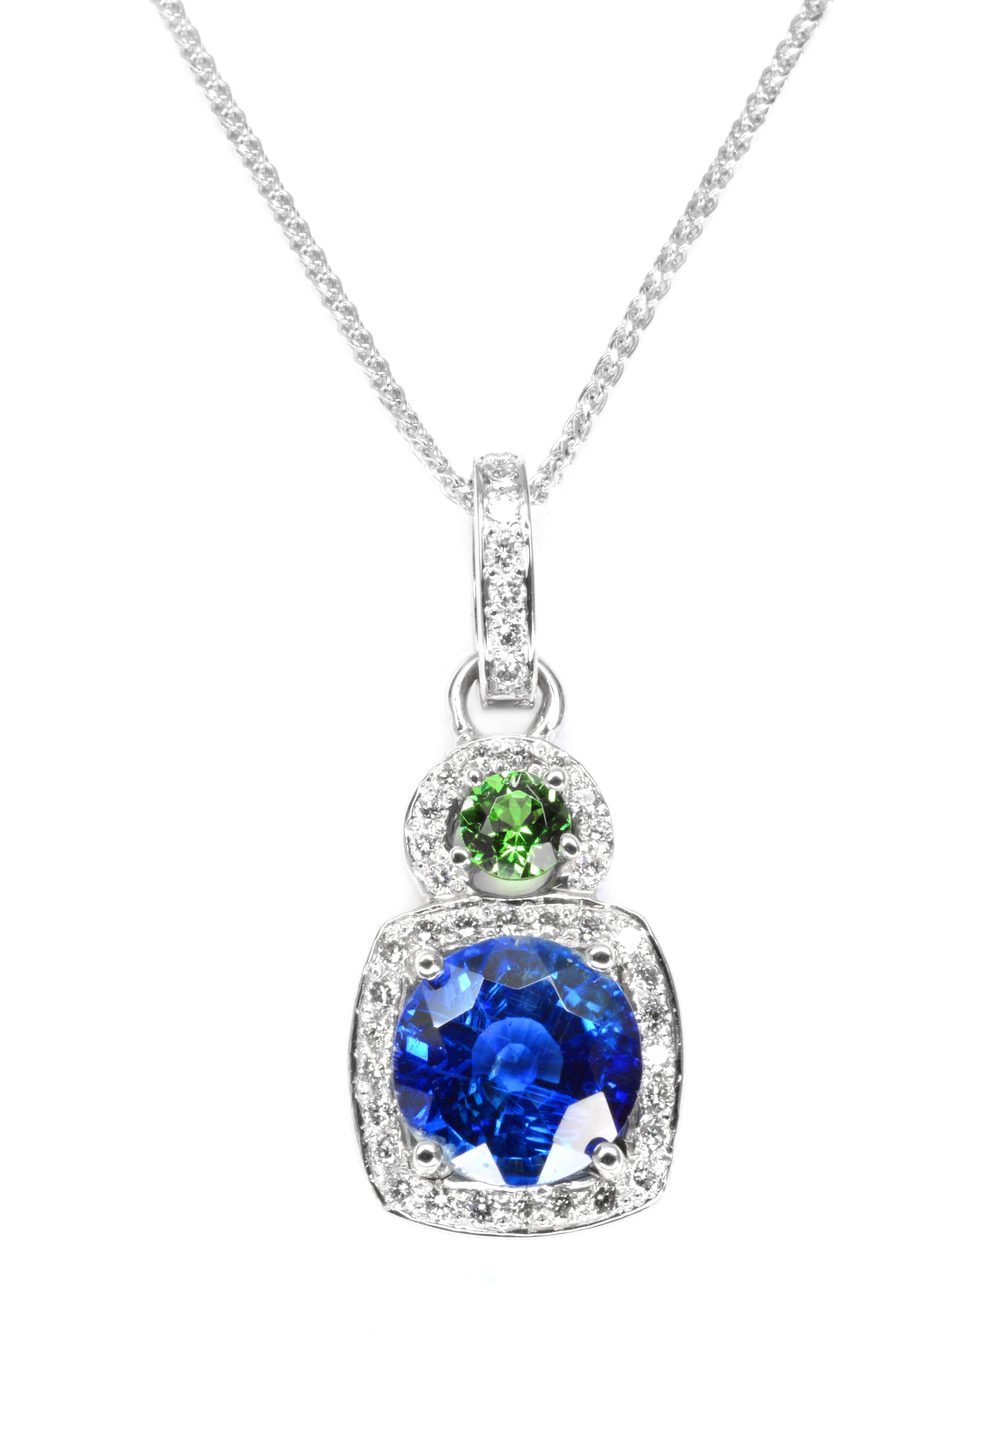 14k white gold pendant set with a rich blue kyanite and a bright green tsavorite accented with diamonds, designed by Jason Baskin.